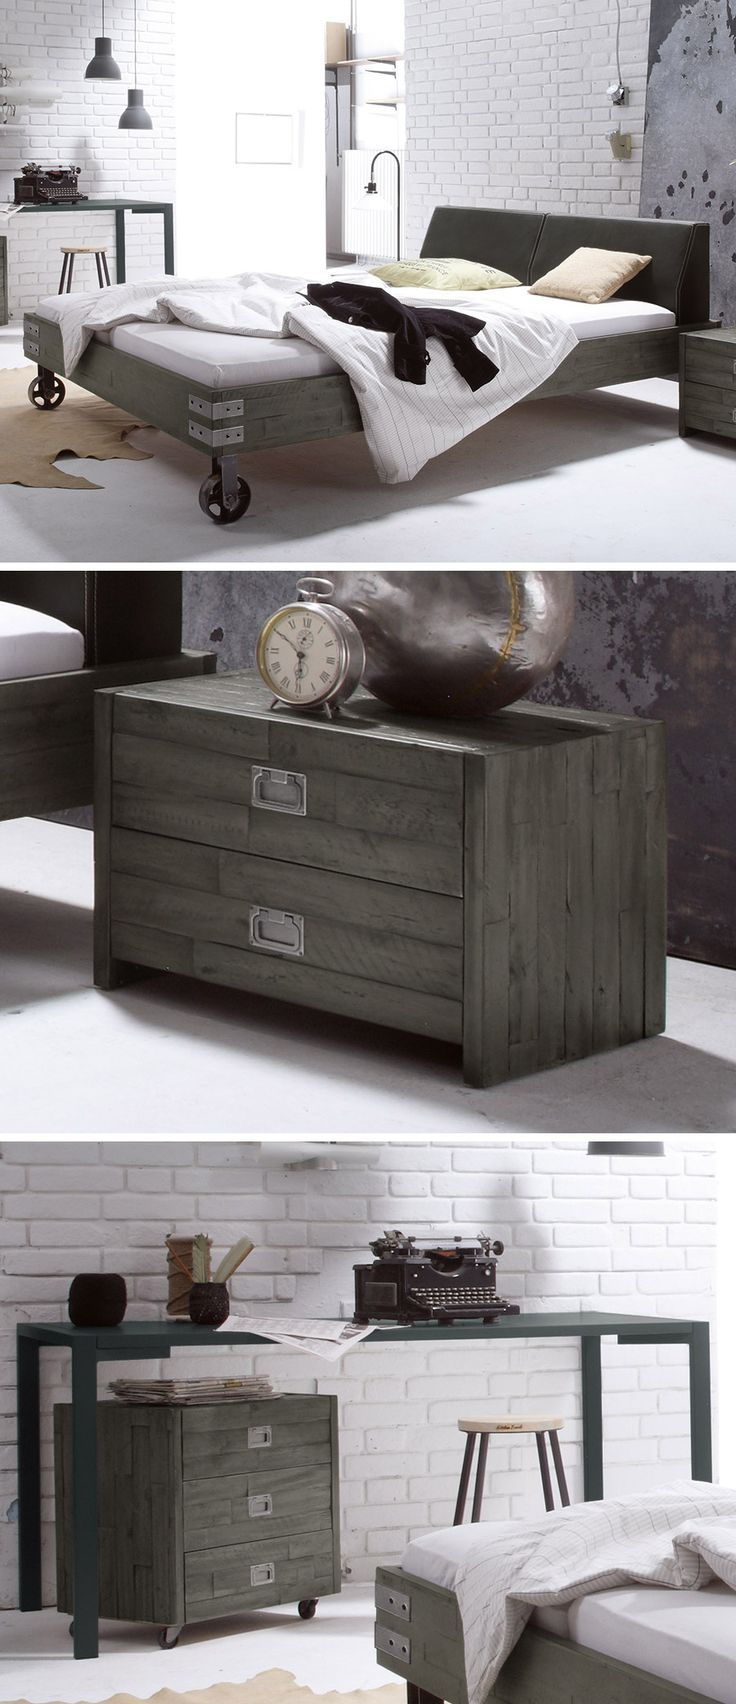 The 154 best Industrial Style images on Pinterest | Ikea industrial ...